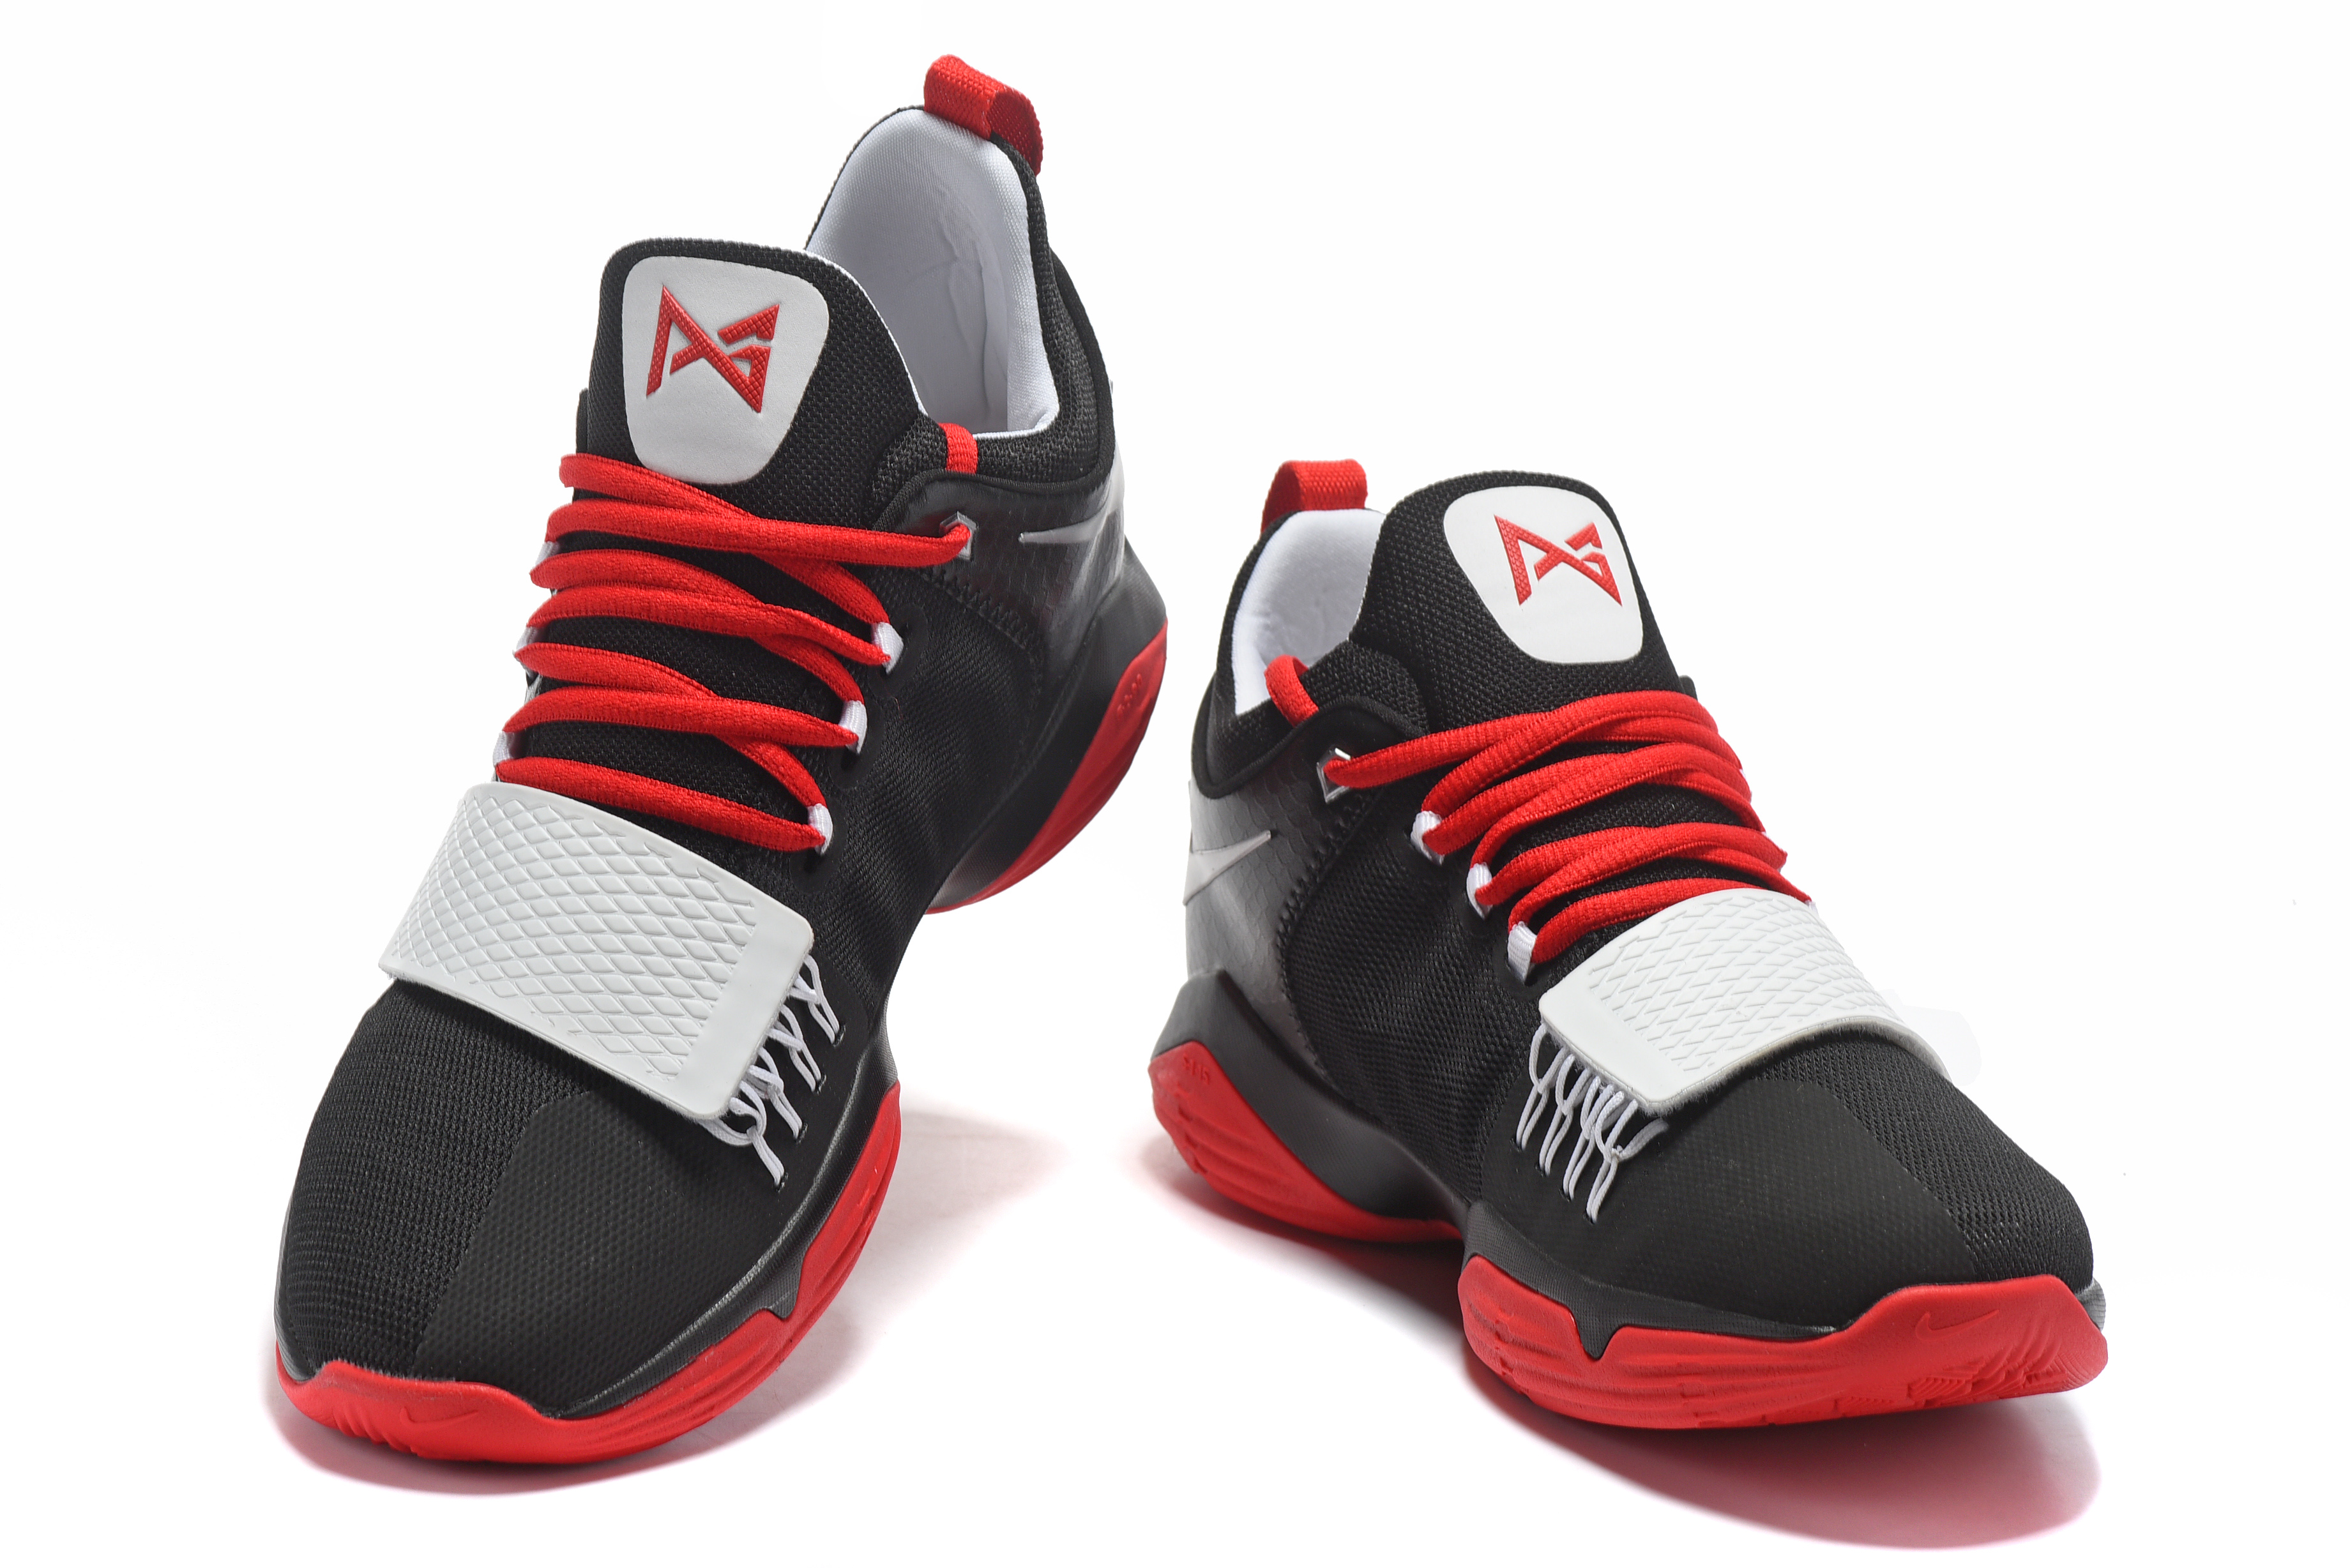 Paul George 1 Black Red Shoes